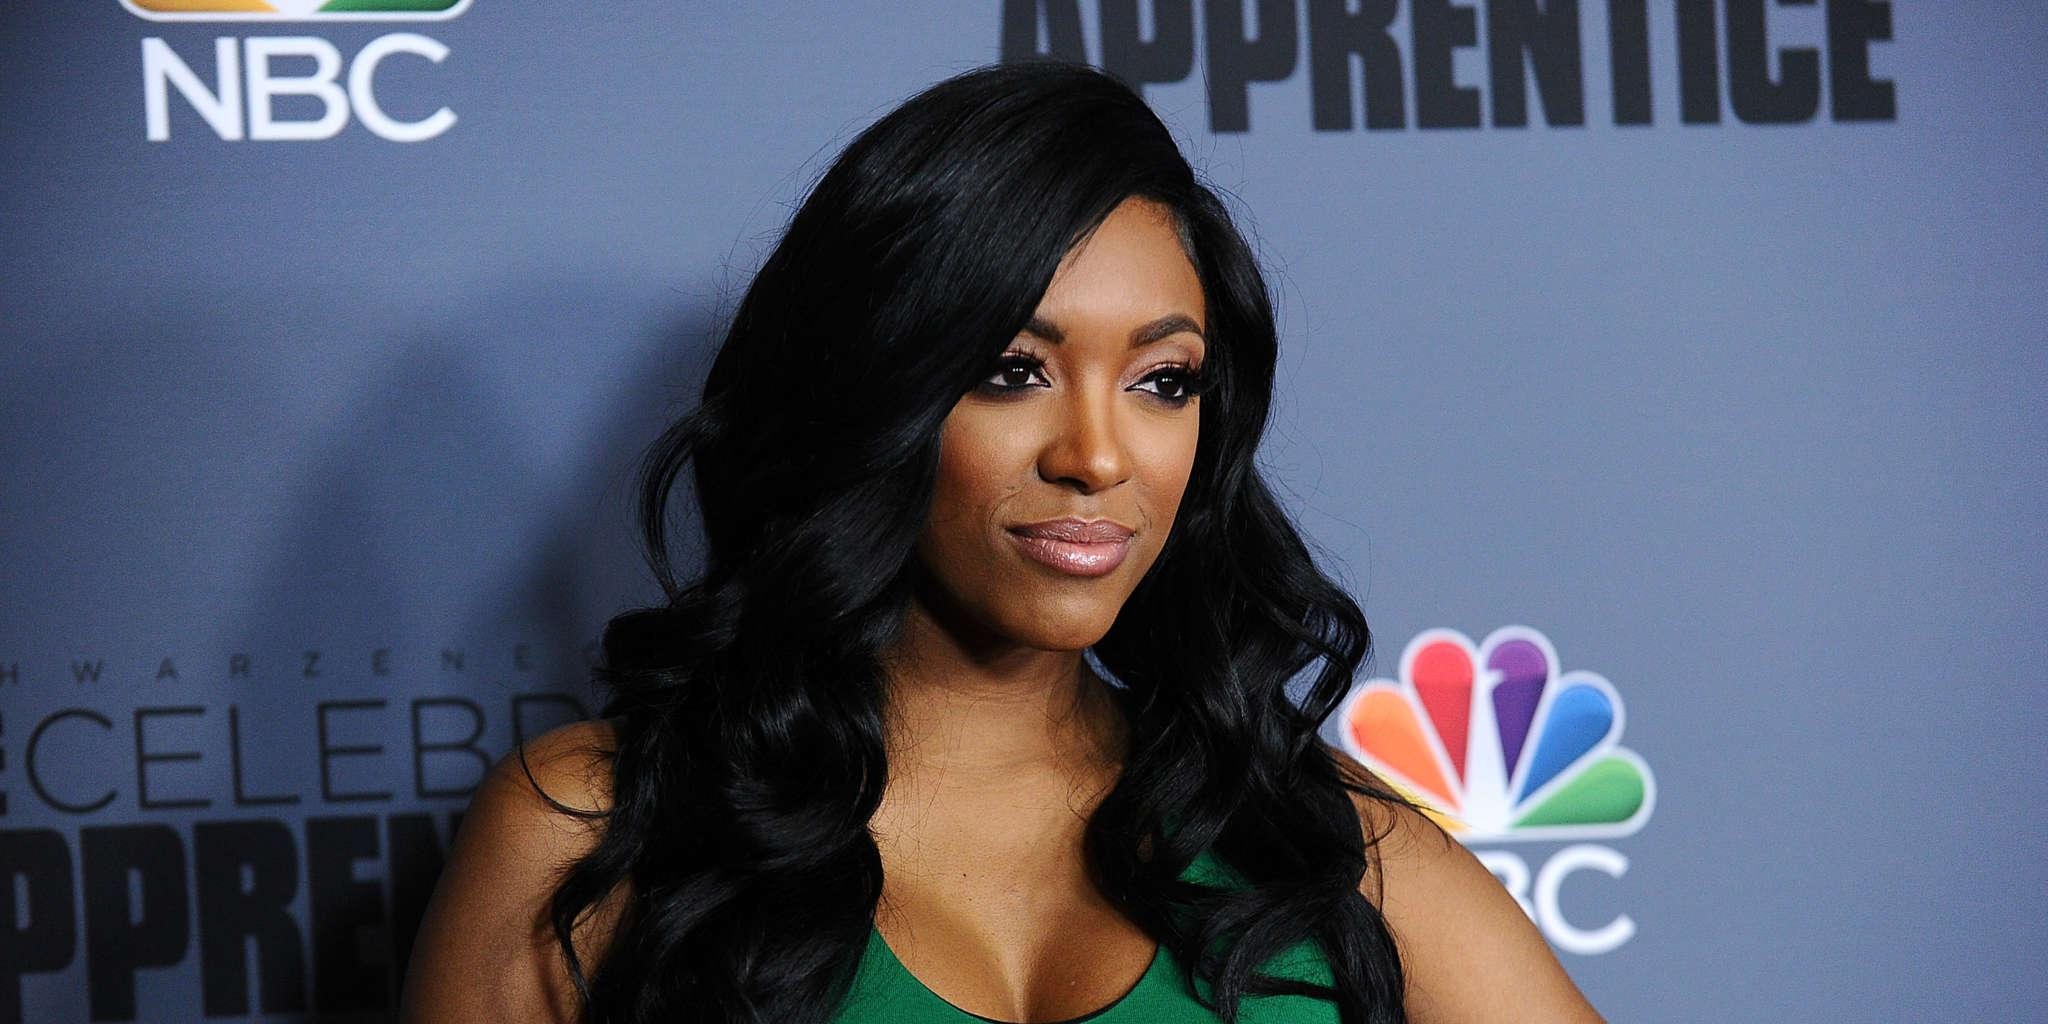 Porsha Williams Offers Her Gratitude To Everyone Who Supported Her During Protests And Arrest